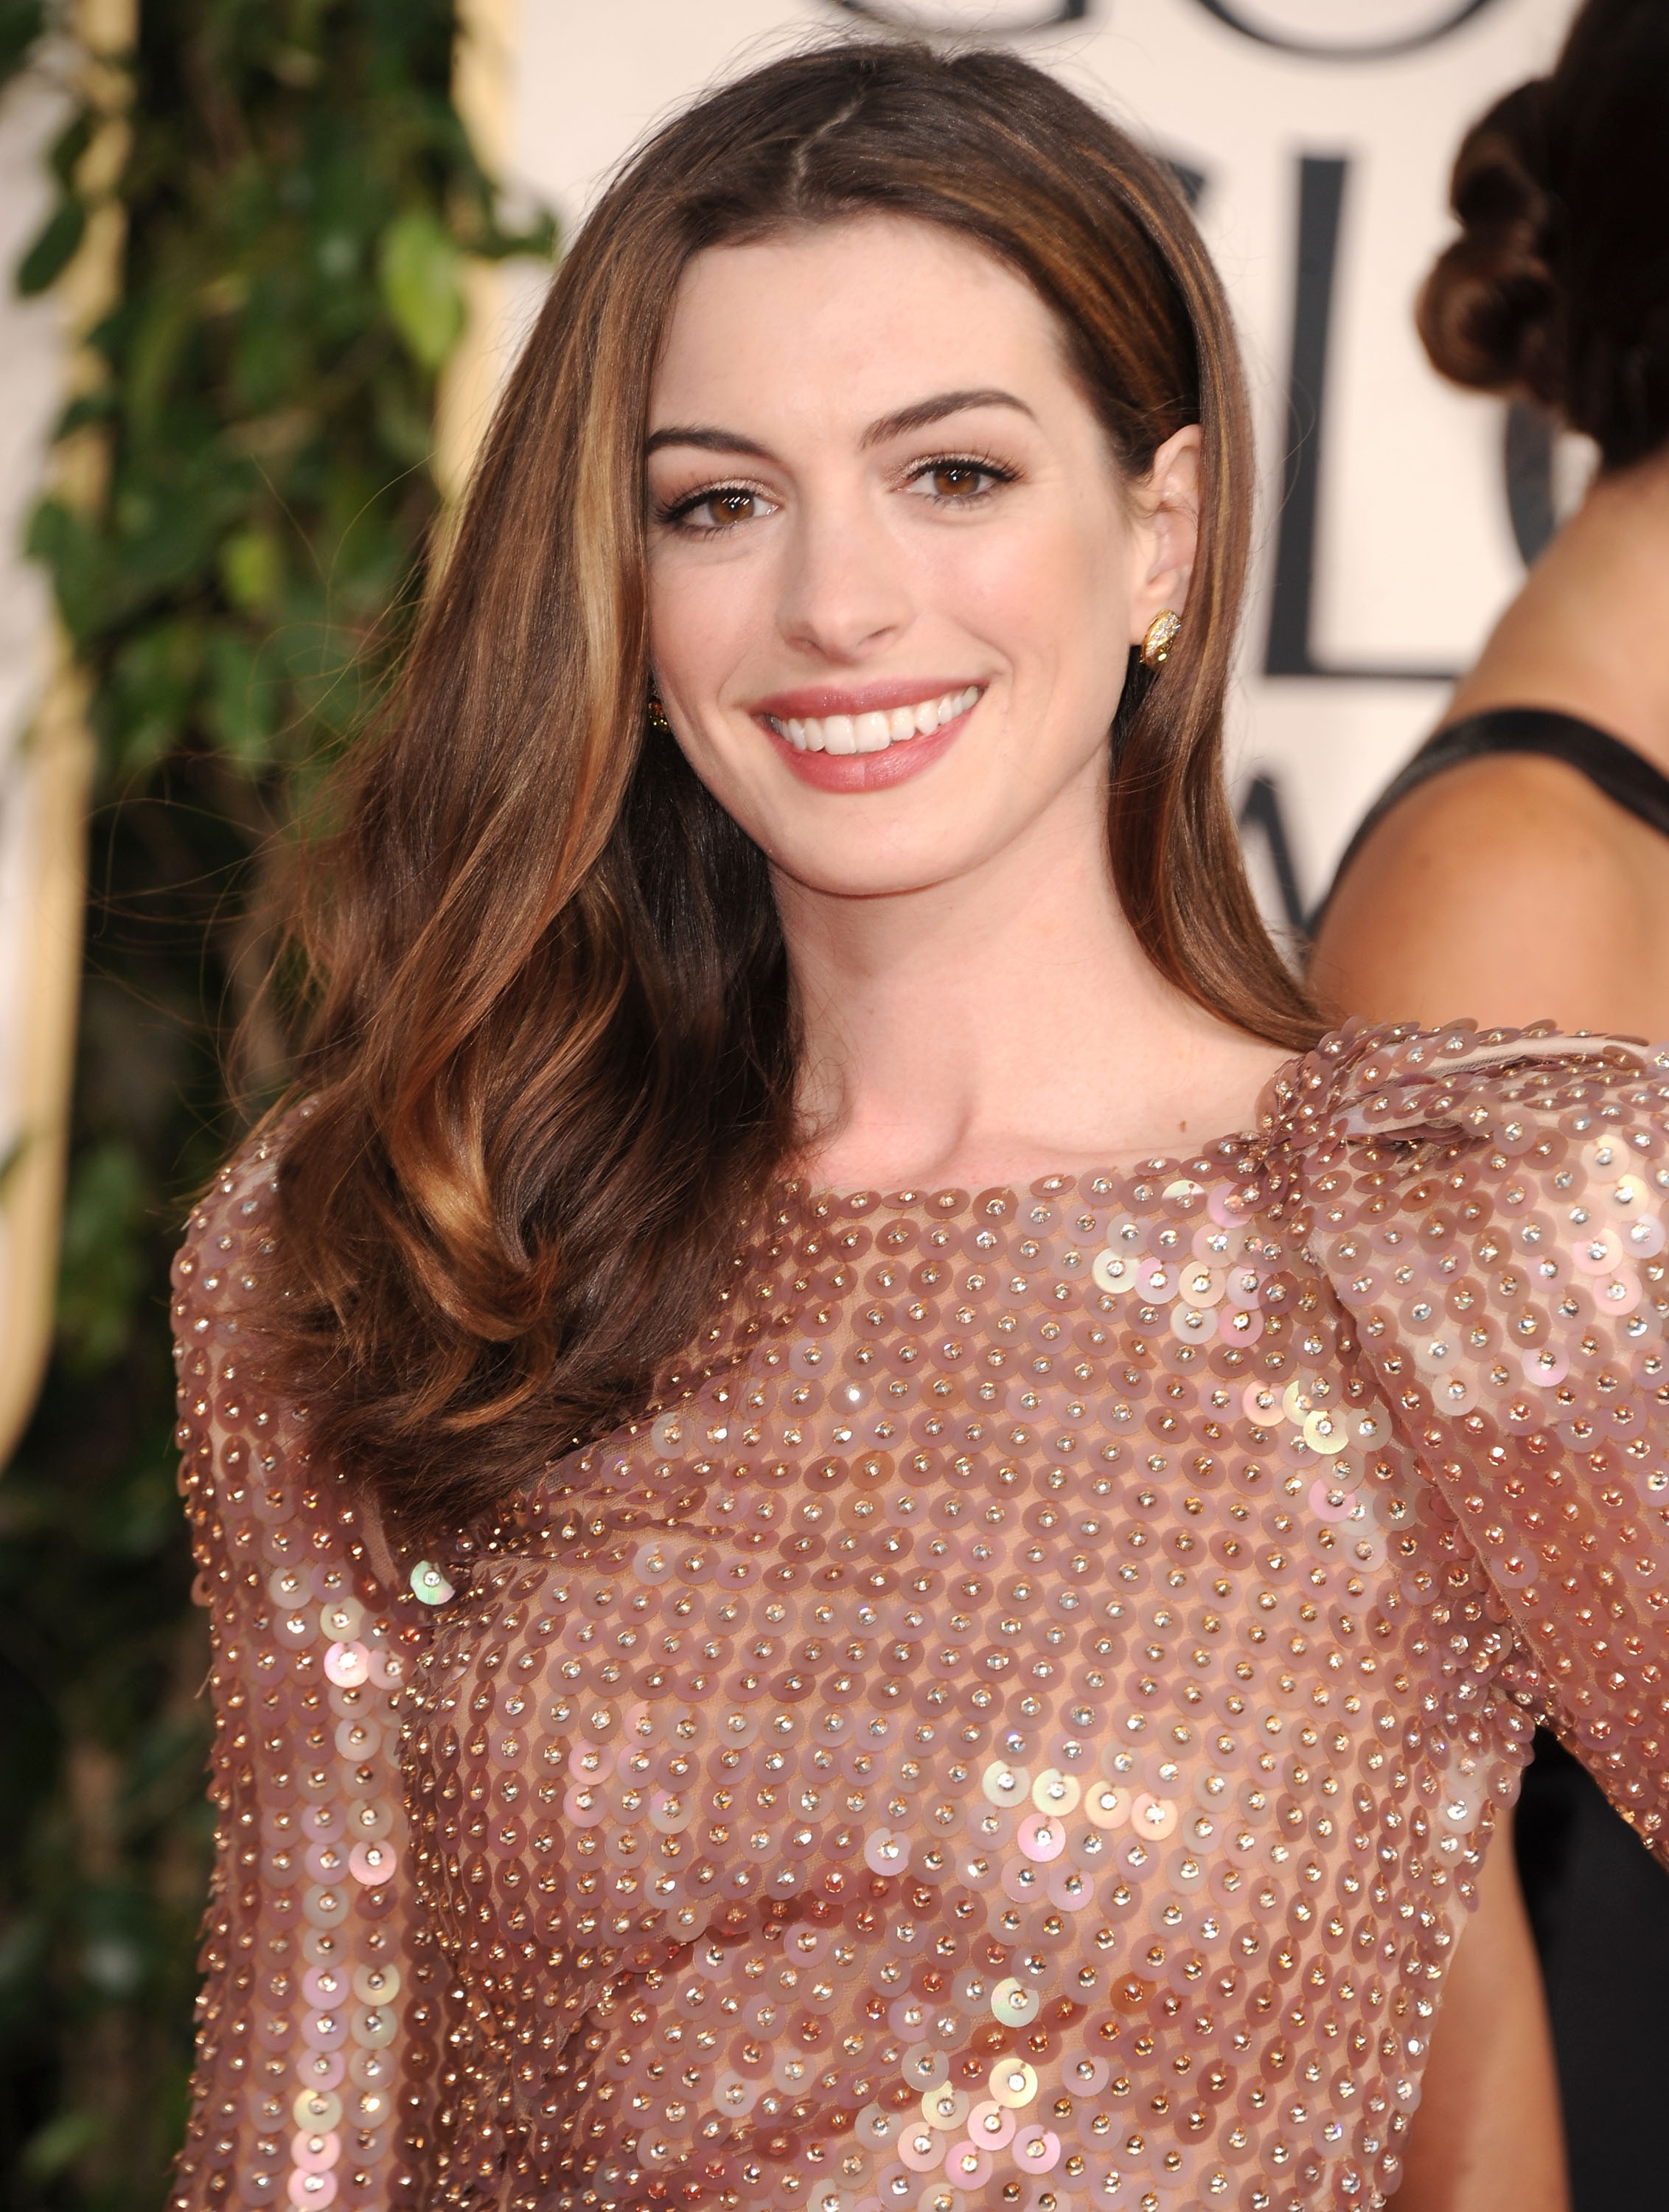 81684_Anne_Hathaway_at_68th_Annual_Golden_Globe_Awards2_122_596lo.jpg